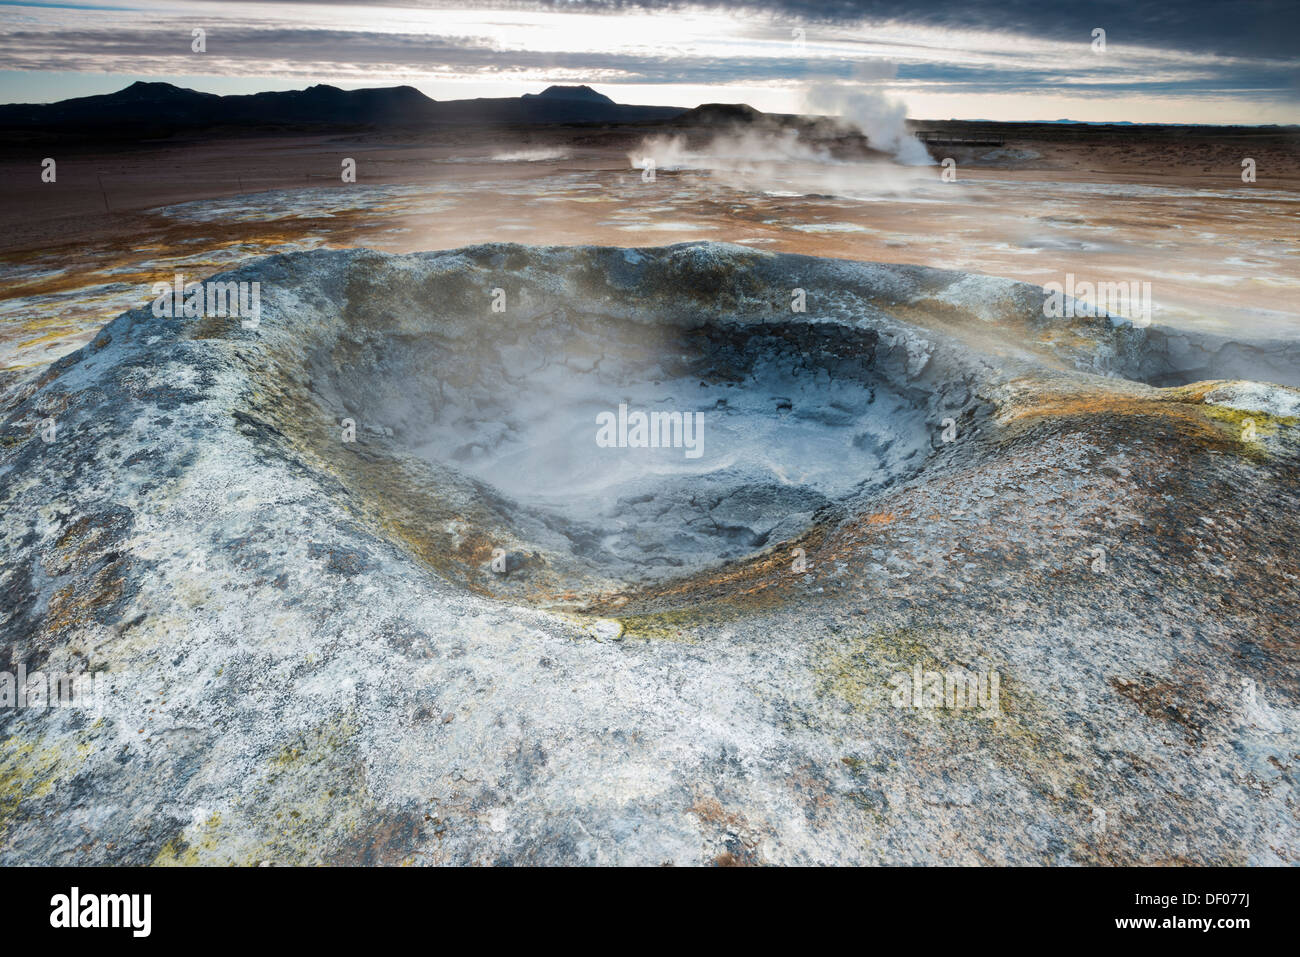 Solfataras, fumaroles, mud pools, sulfur and other minerals, steam, Hveraroend geothermal area, Námafjall mountains - Stock Image